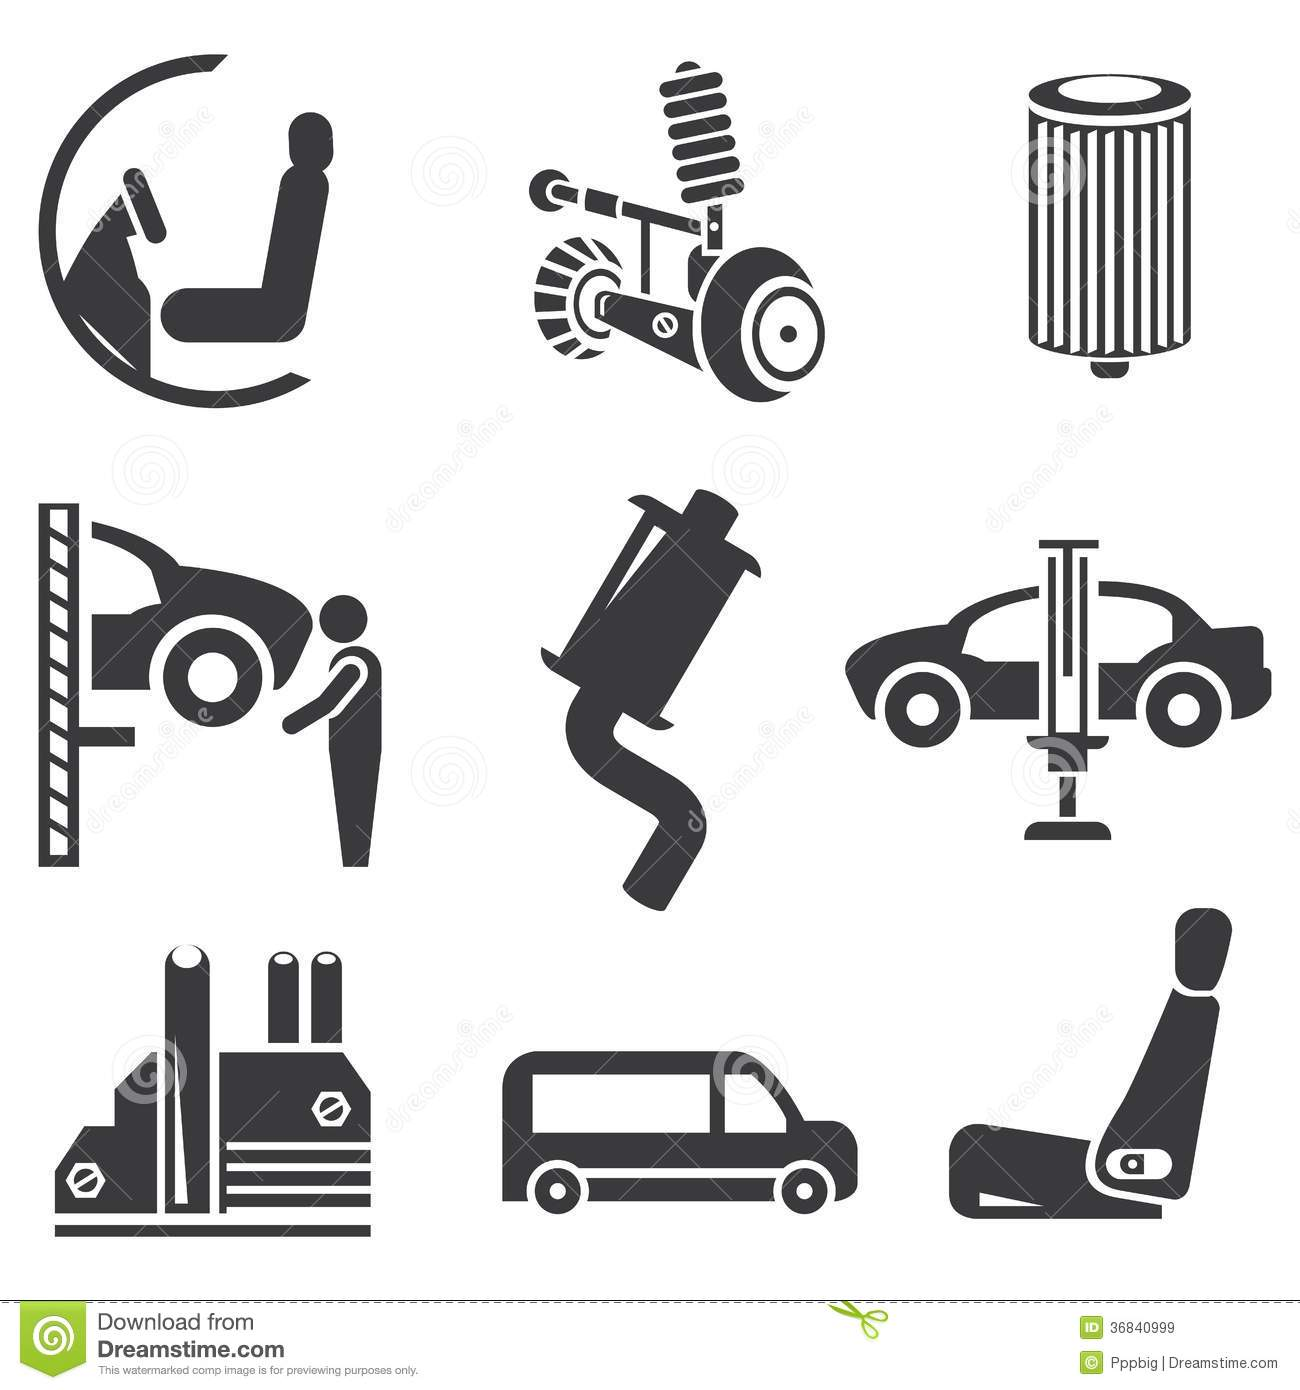 Automotive icons royalty free stock images image 36840999 for Auto p garage roussillon